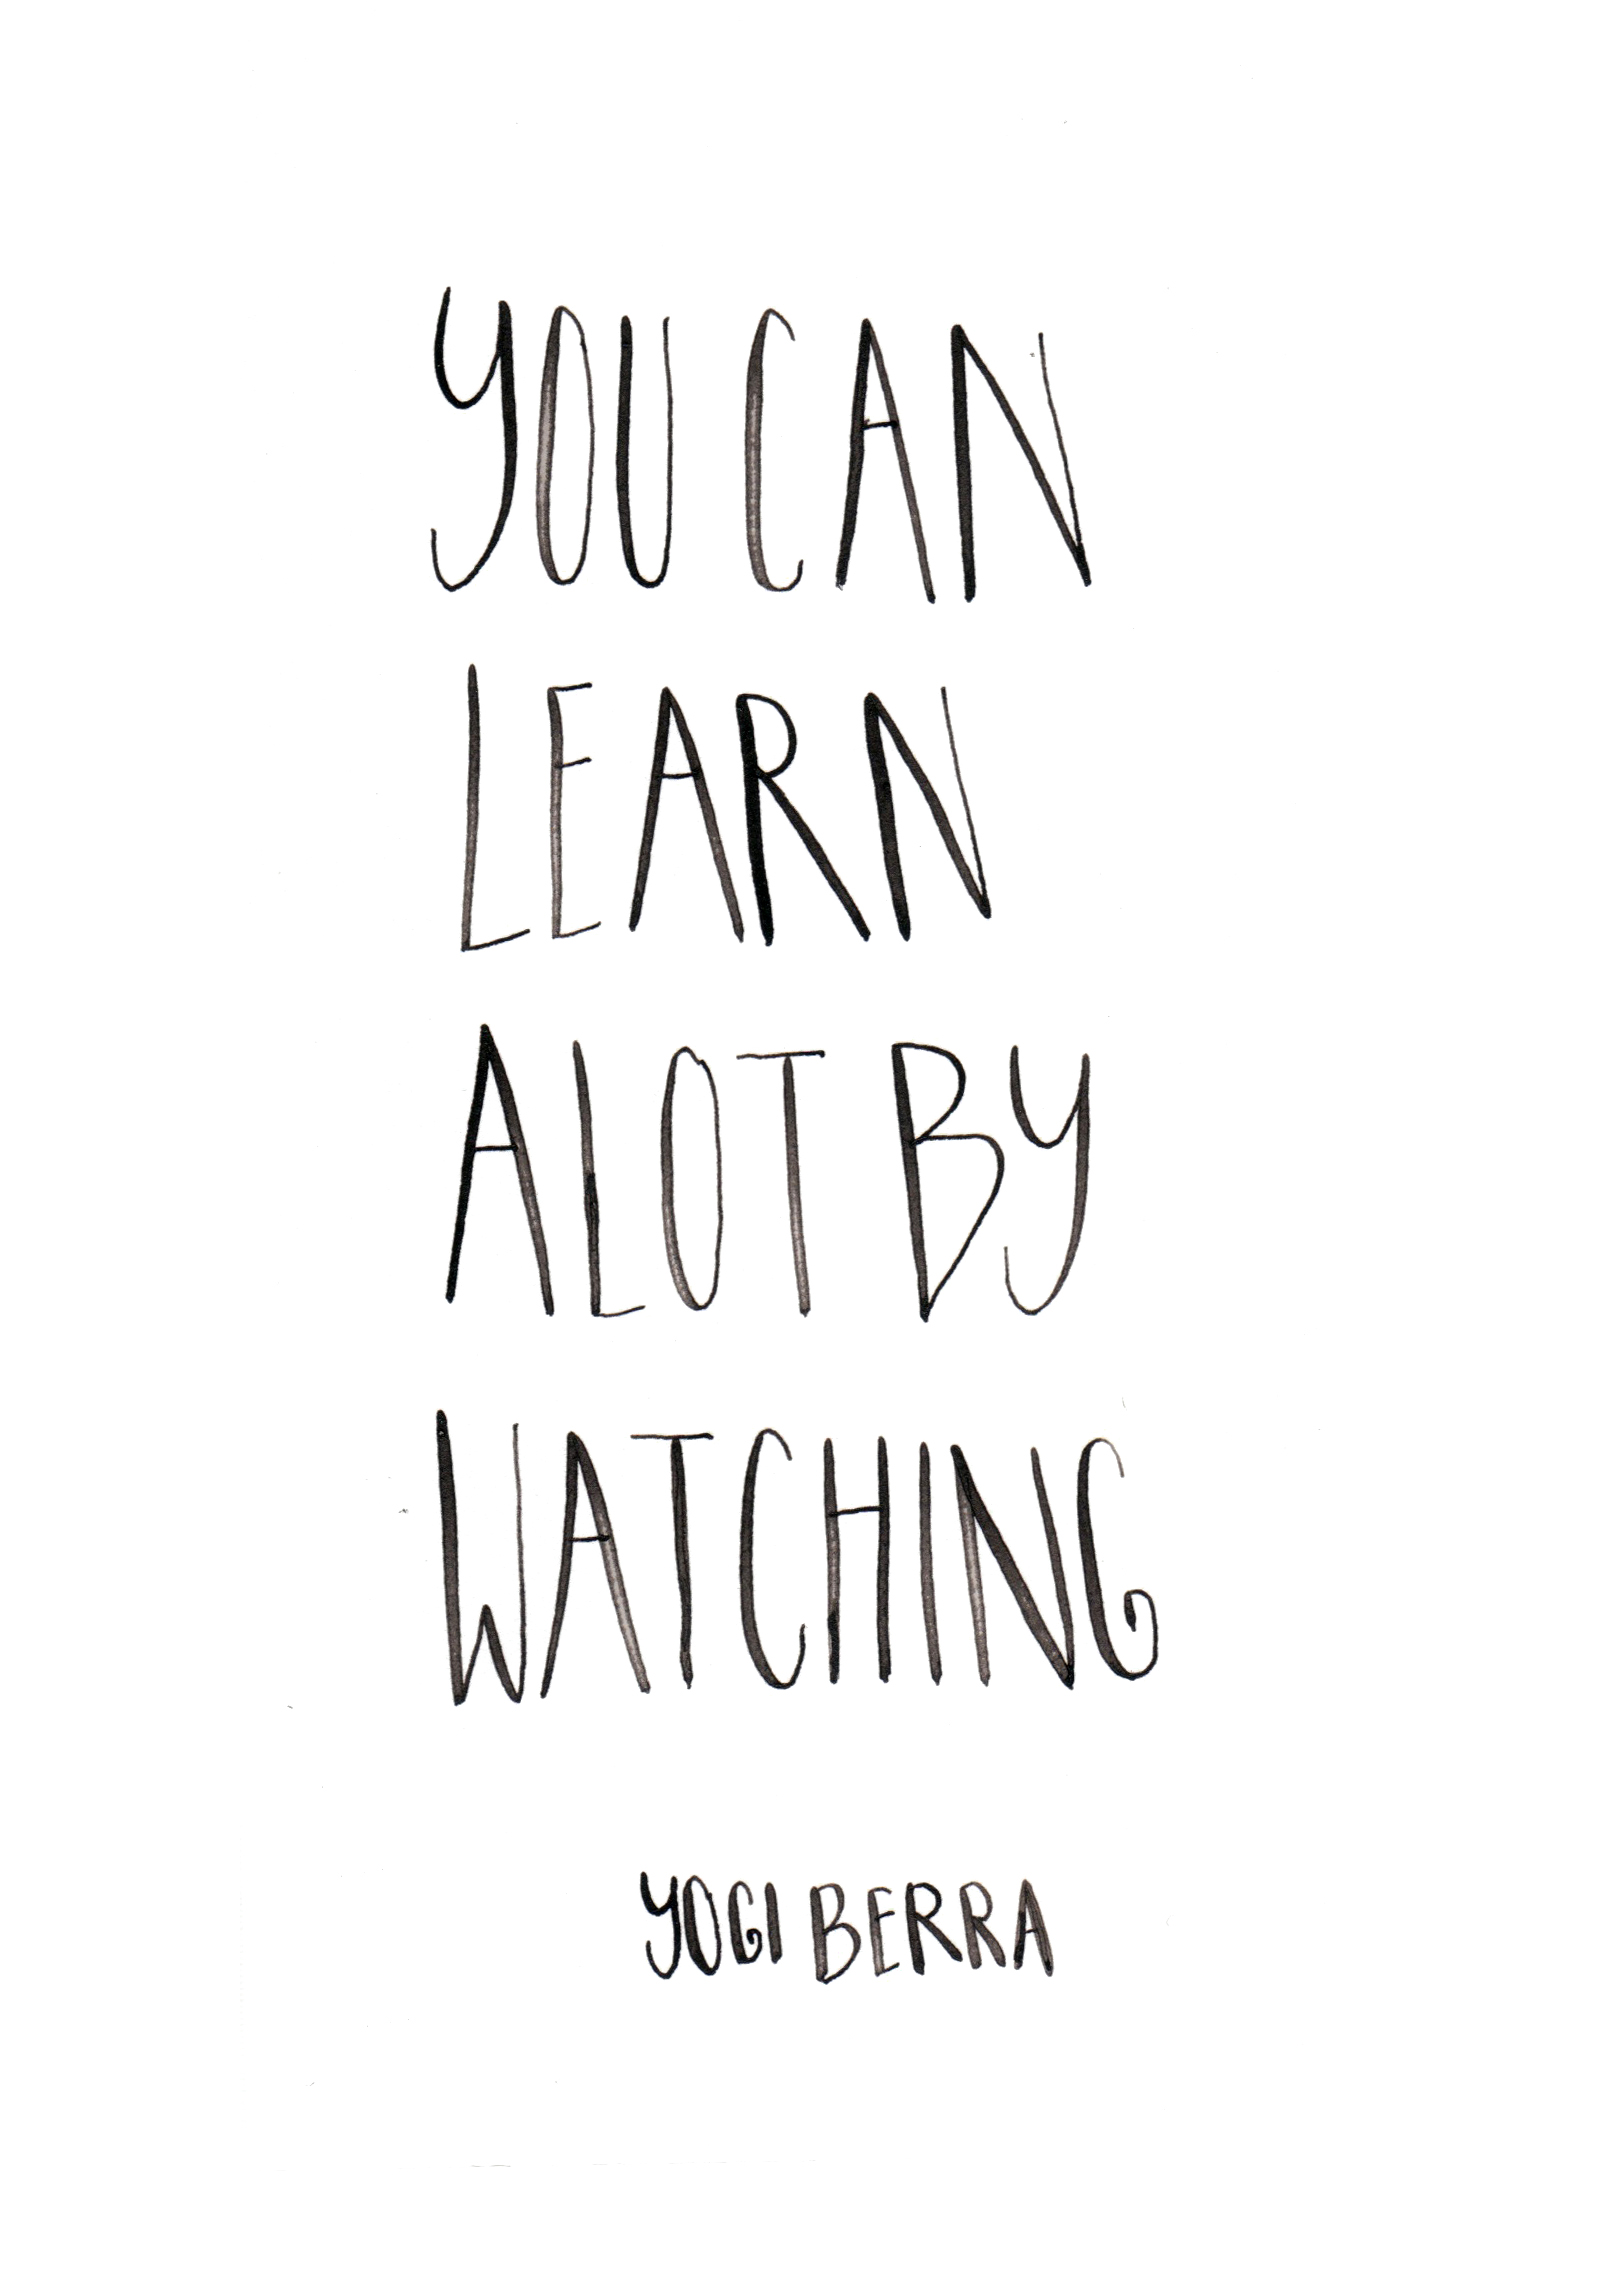 You can learn a lot by watching. Yogi Berra. Custom Type by Alicia Carvalho | www.alicia-carvalho.com